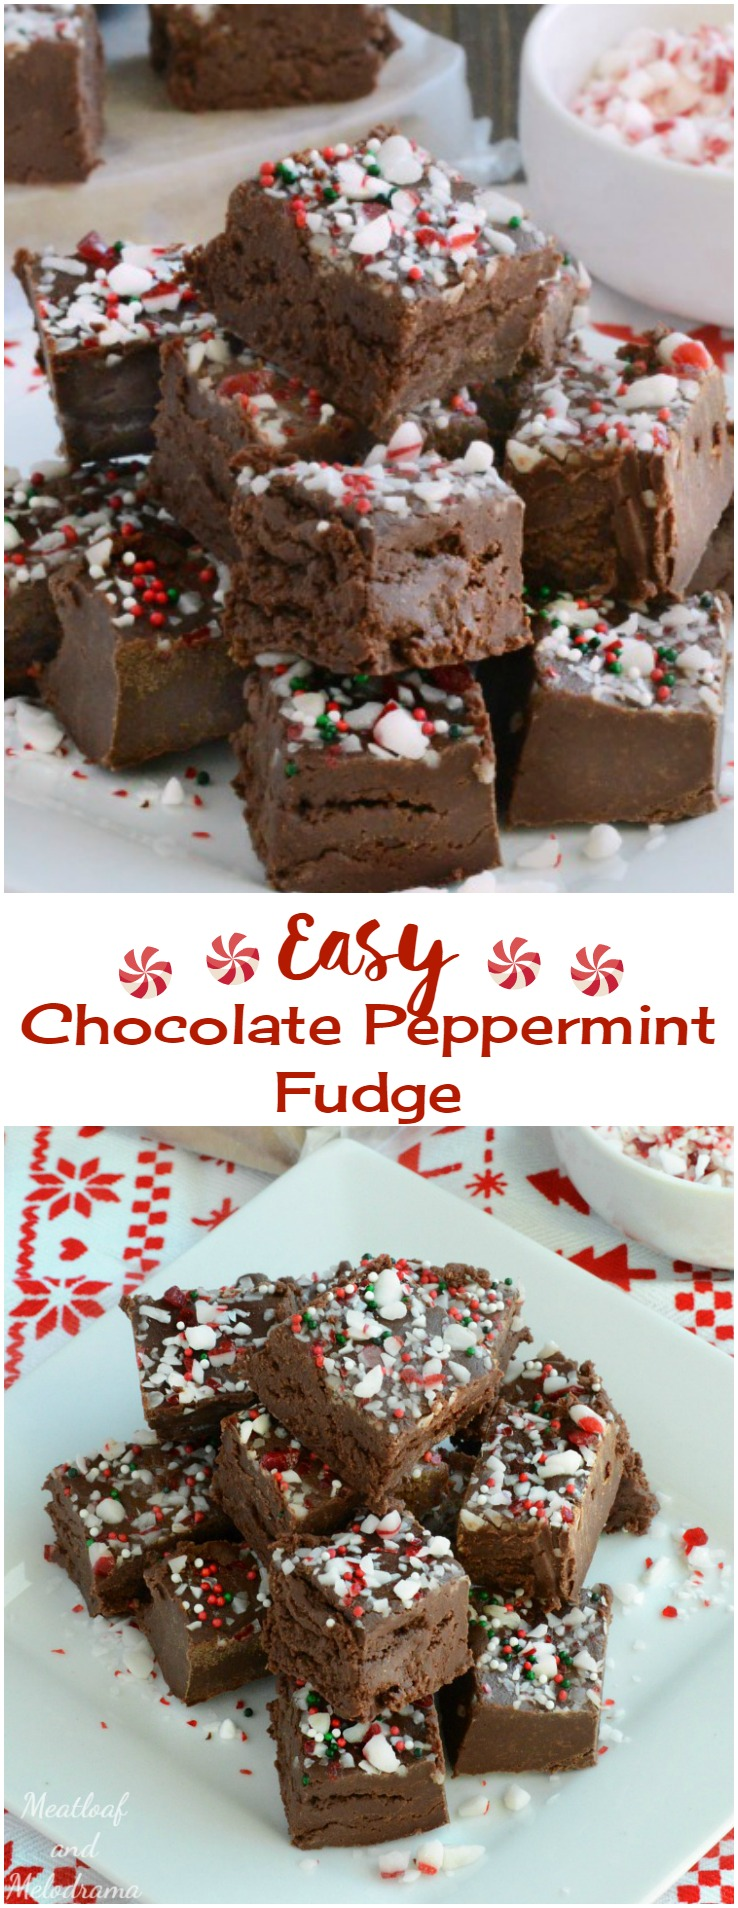 Easy Chocolate Peppermint Fudge